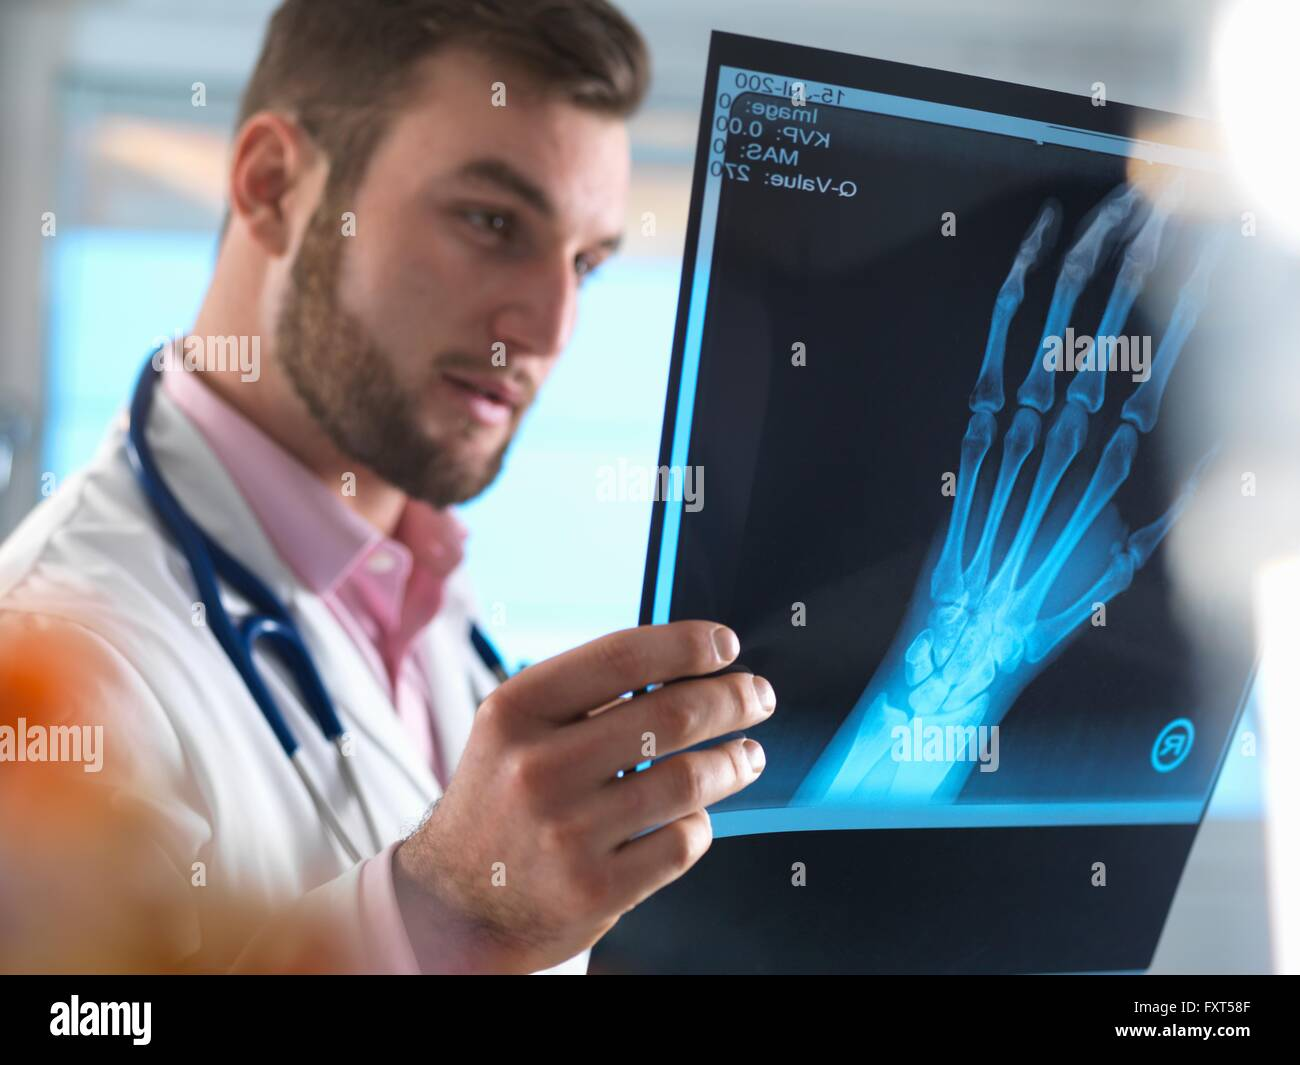 Médecin Junior examining x-ray de main fracturée à l'hôpital Photo Stock